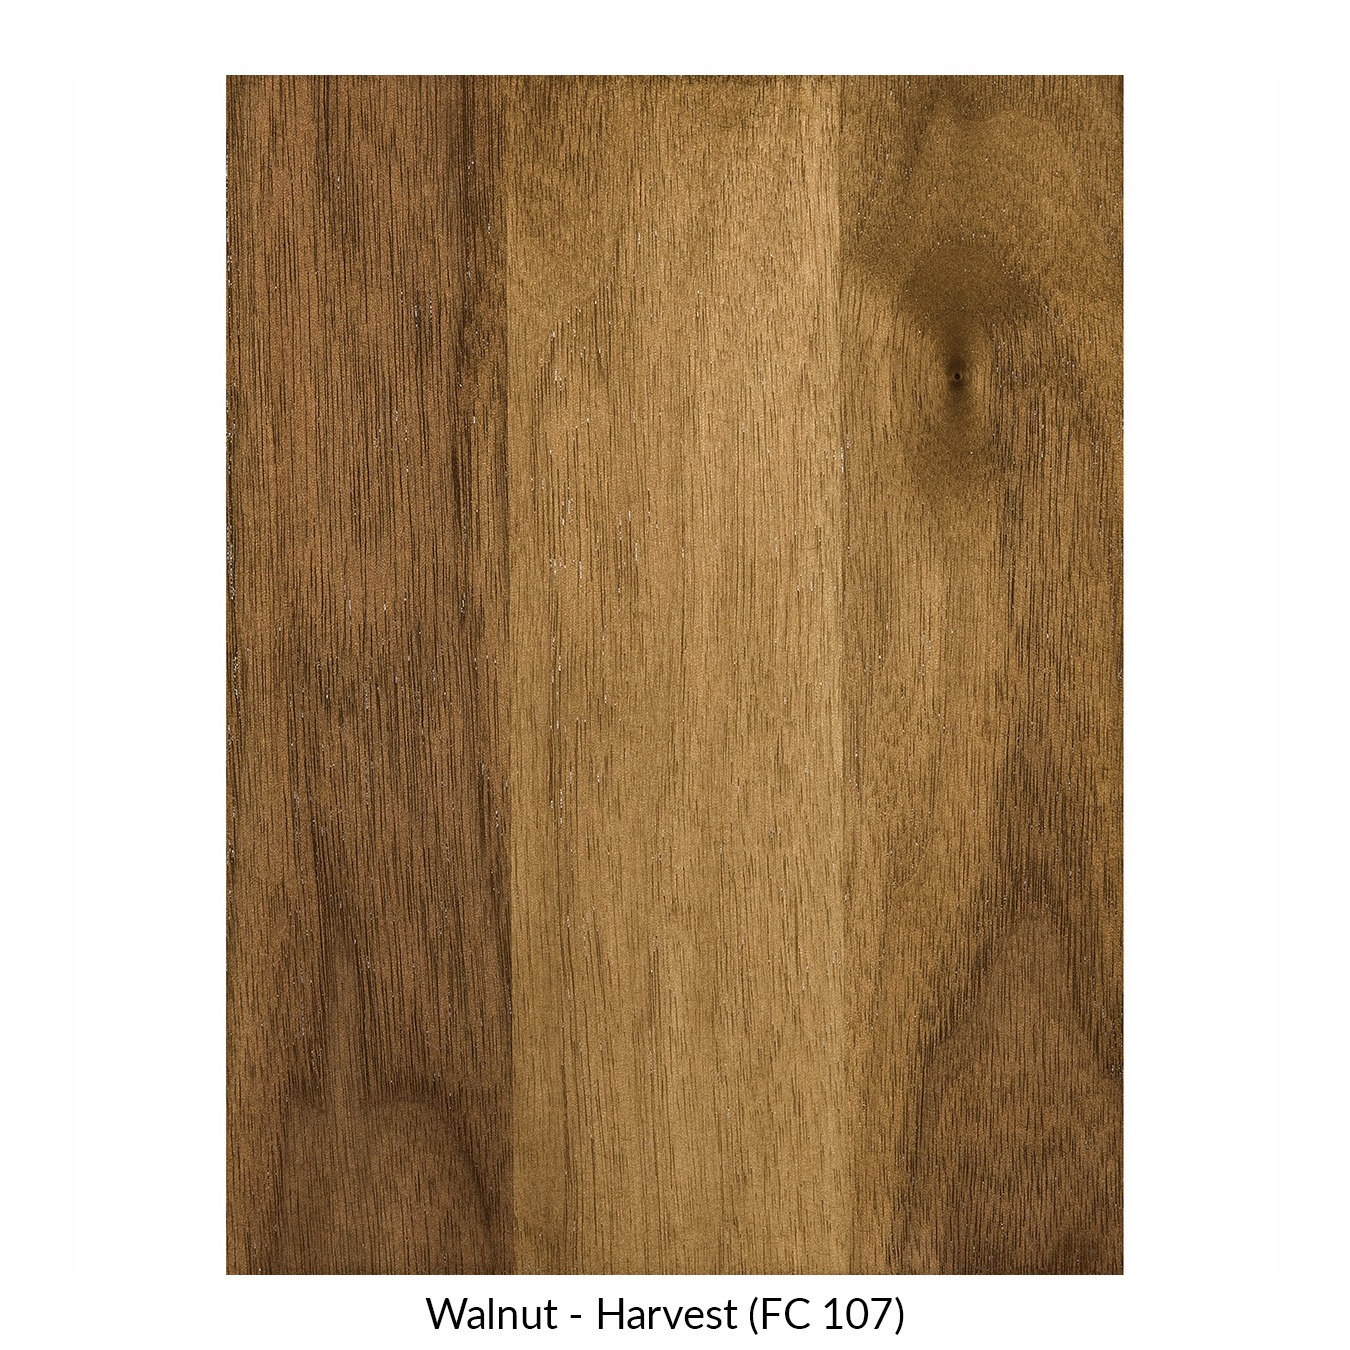 spectrum-walnut-harvest-fc-107.jpg